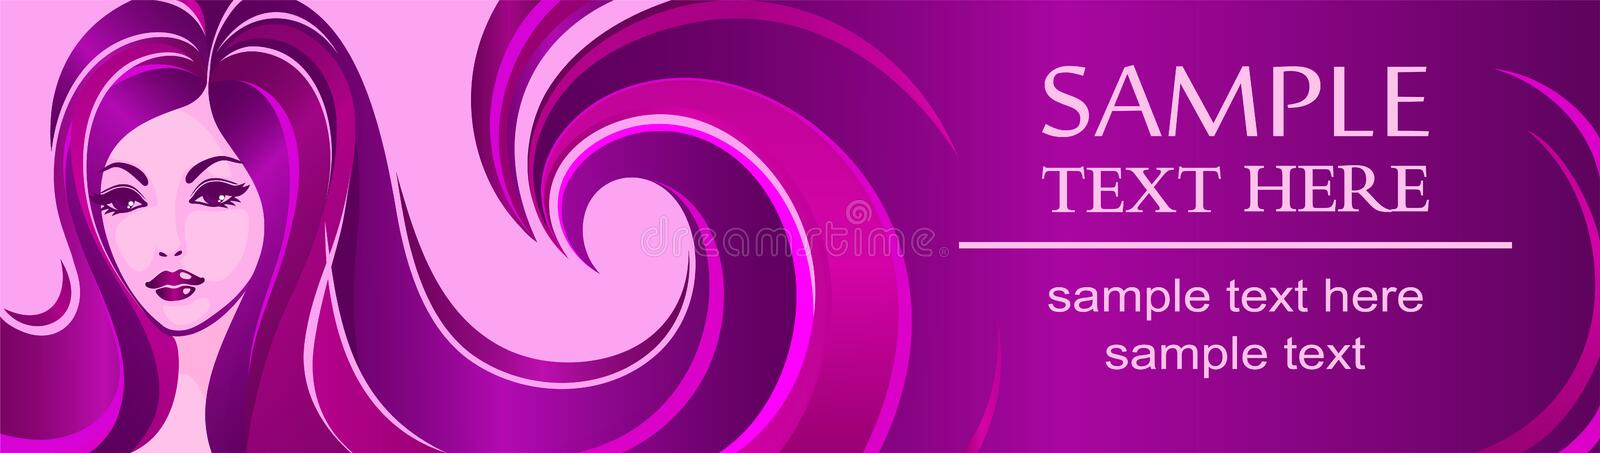 Download Banner Template For Beauty Salon Or Advertising Stock Illustration